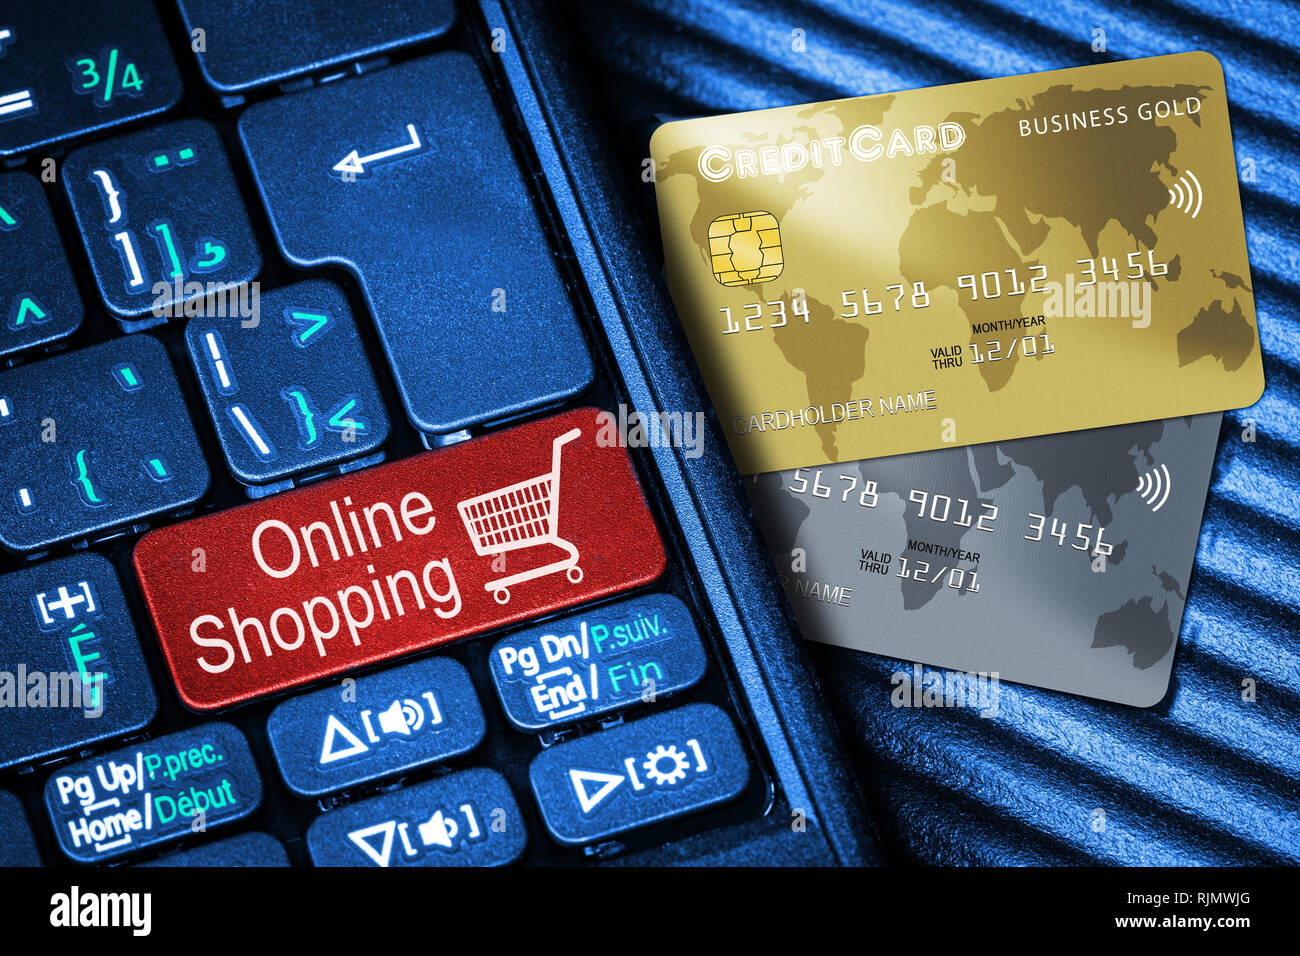 Close up of computer laptop keyboard on generic credit cards with red button Online Shopping concept. Idea of Internet shopping and data privacy, secu - Stock Image